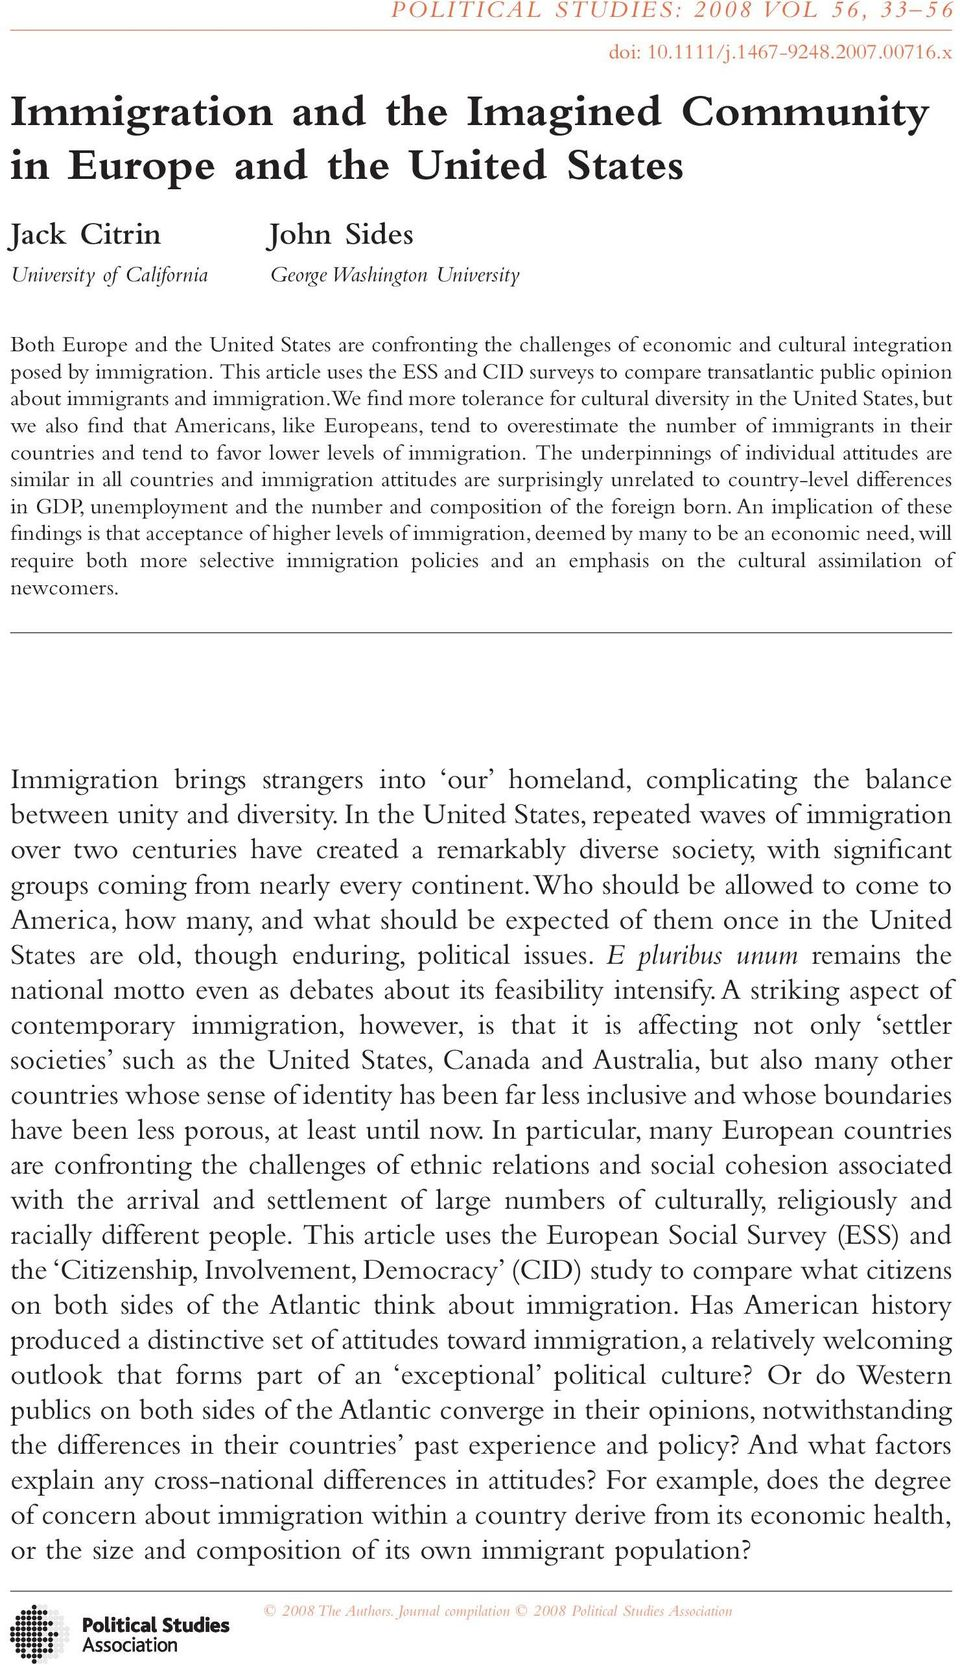 the challenges of economic and cultural integration posed by immigration. This article uses the ESS and CID surveys to compare transatlantic public opinion about immigrants and immigration.